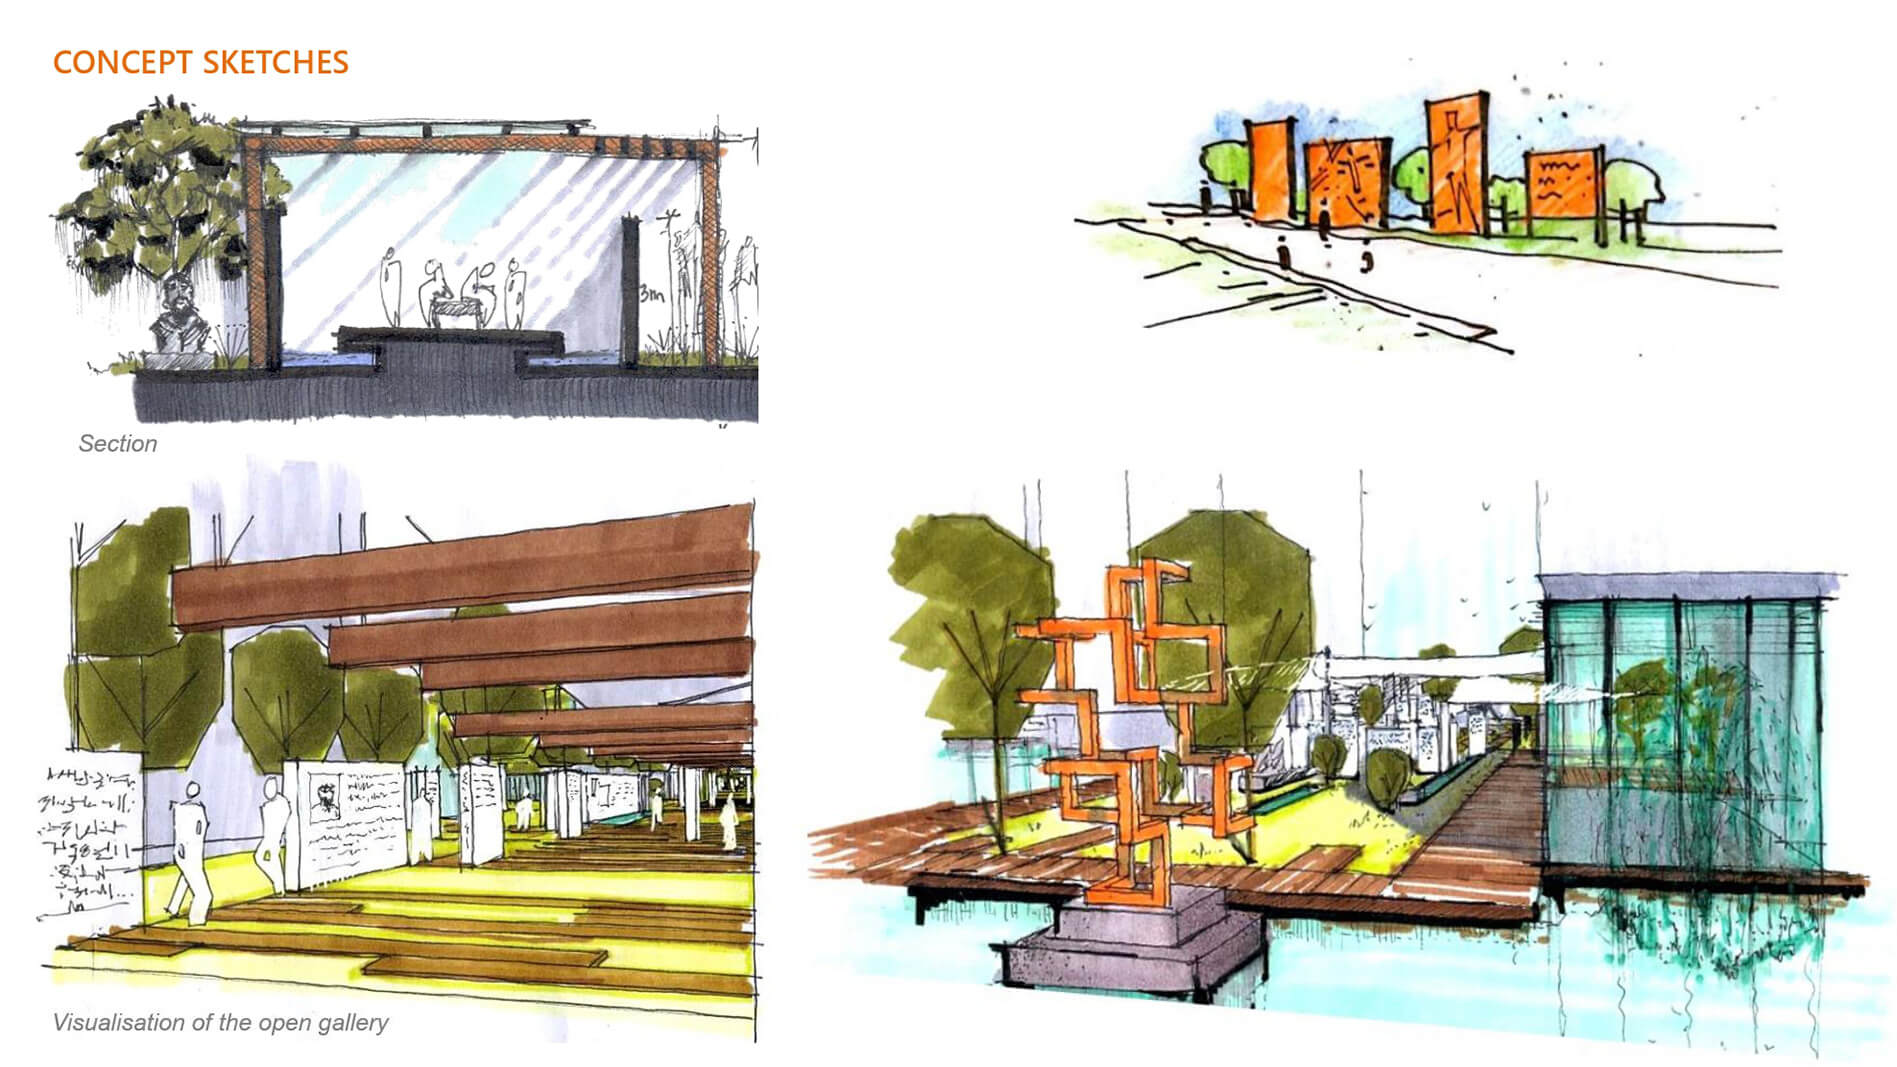 Initial conceptual sketches by Morphogenesis | ITC Campus by Morphogenesis | STIRworld